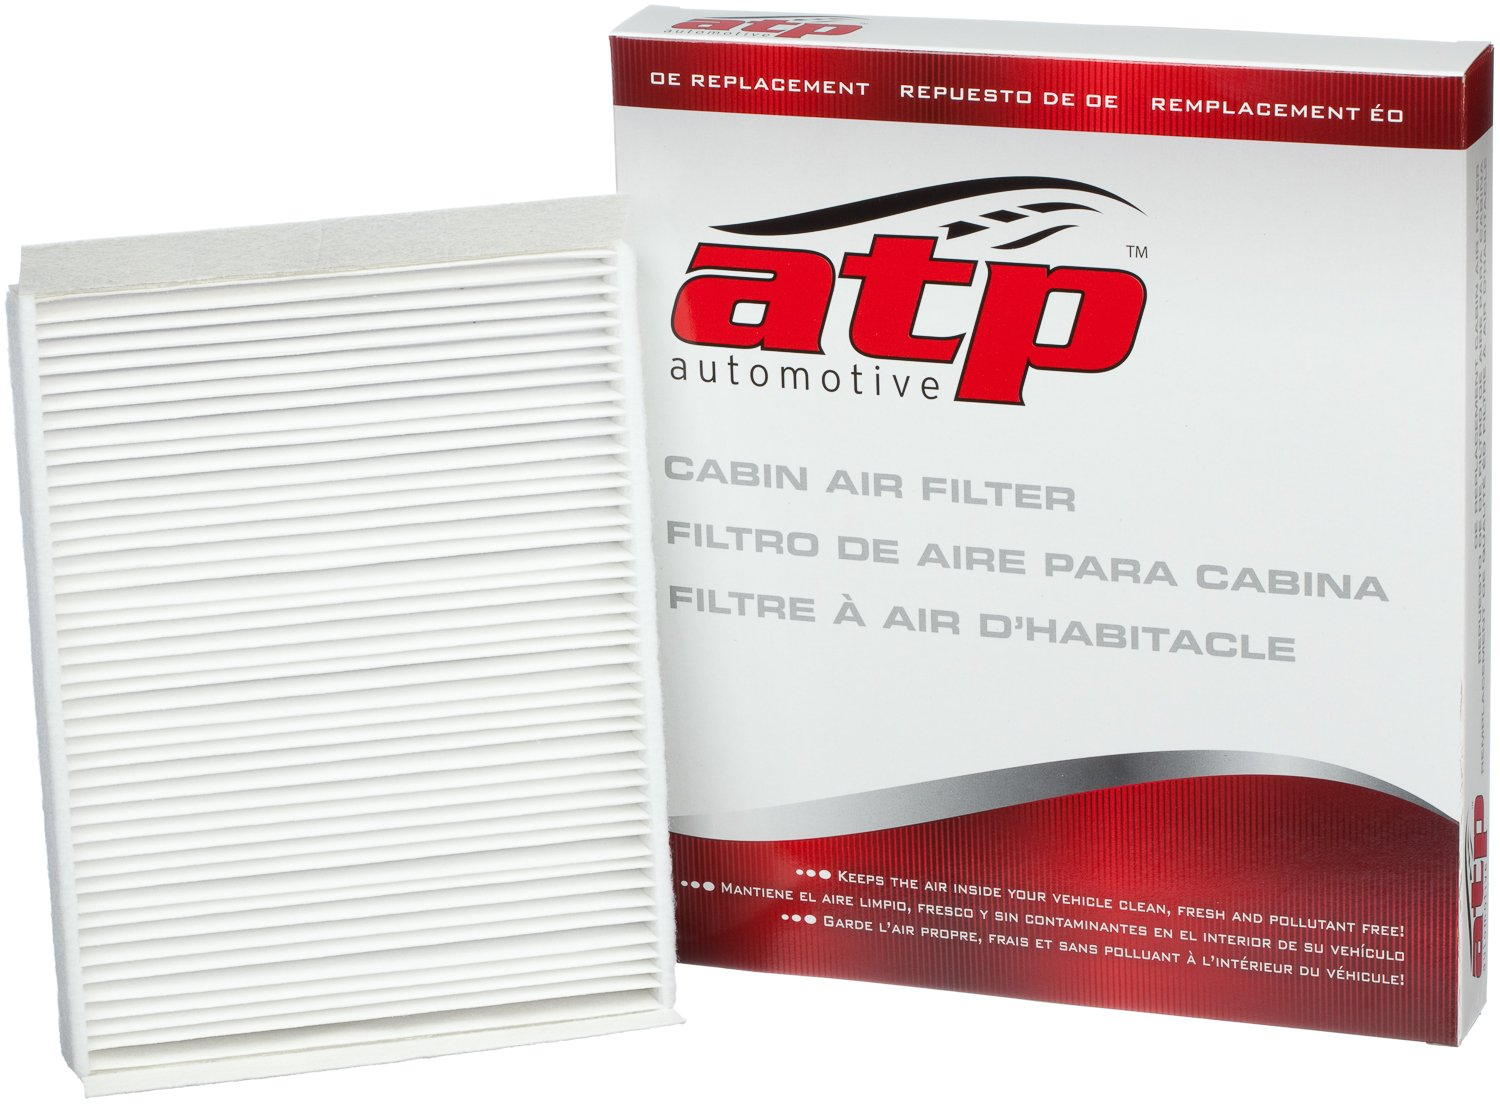 atp automotive Innenraumfilter CF-281, Weiß von ATP Automotive